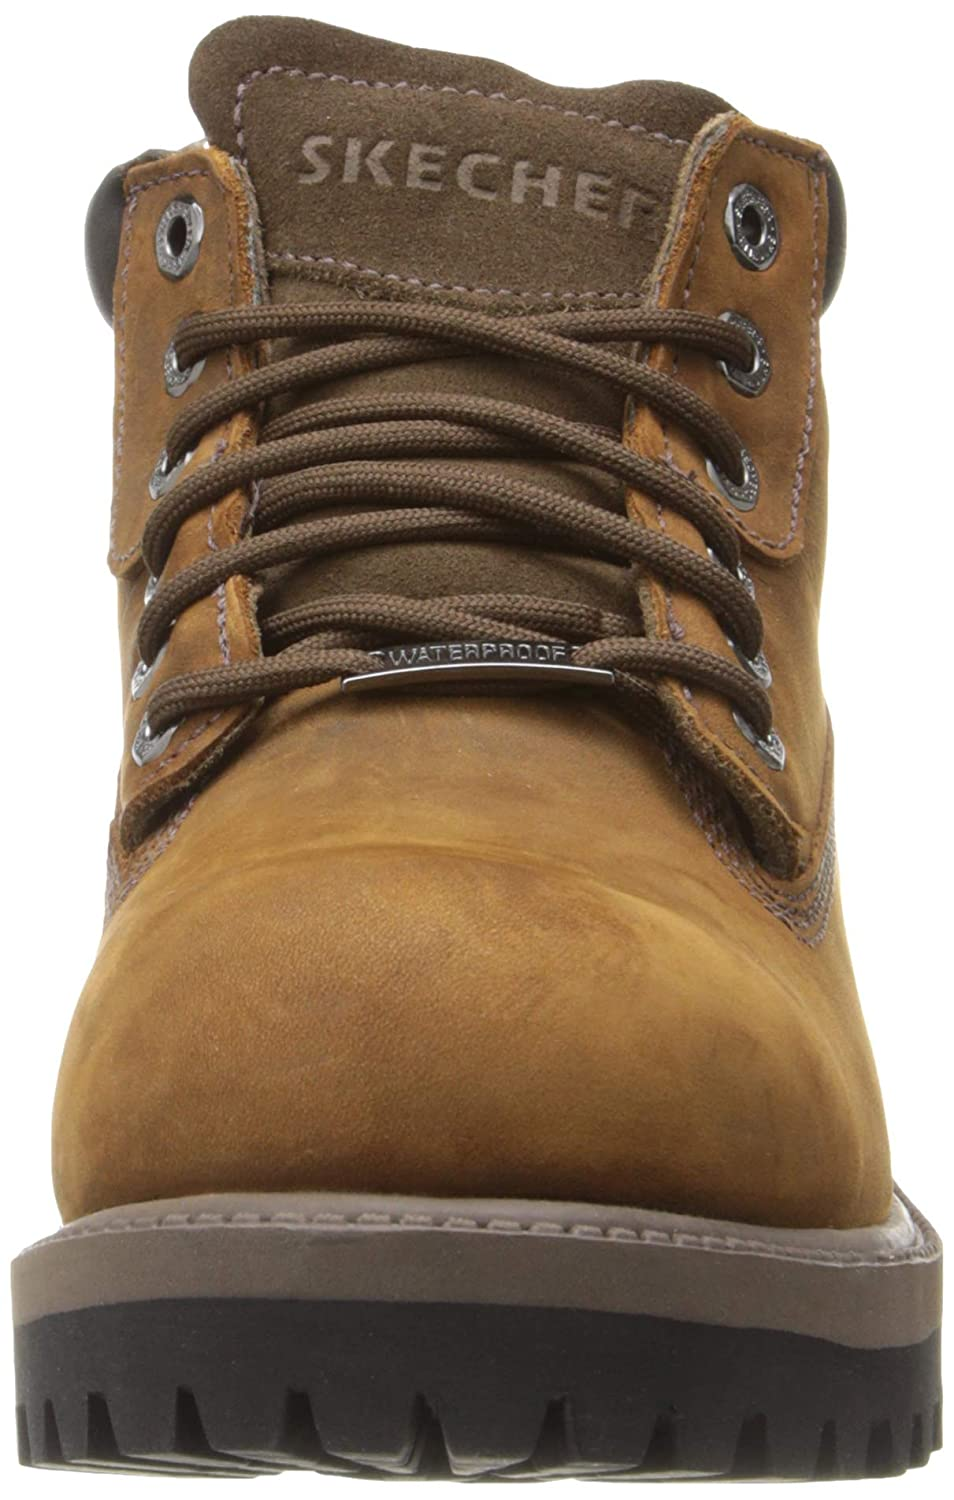 skechers boots sn 4442 Sale,up to 50